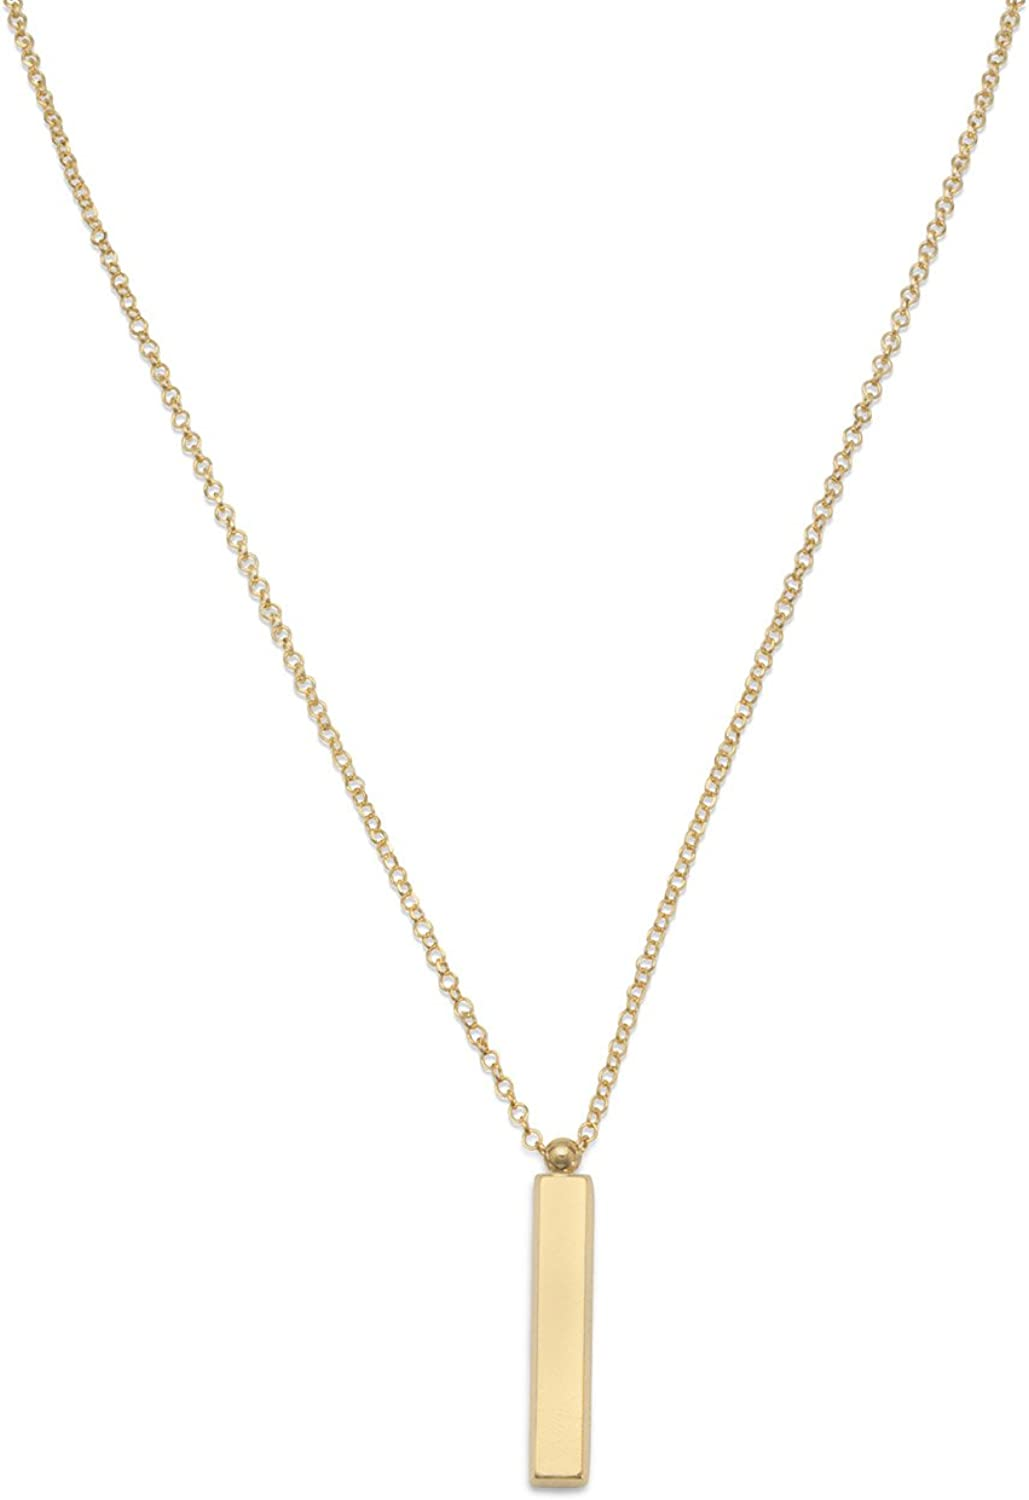 925 Sterling Silver Polished Spring Ring Rhodium-plated and Gold-Flashed Nov Cubic Zirconia Key 18inch Necklace